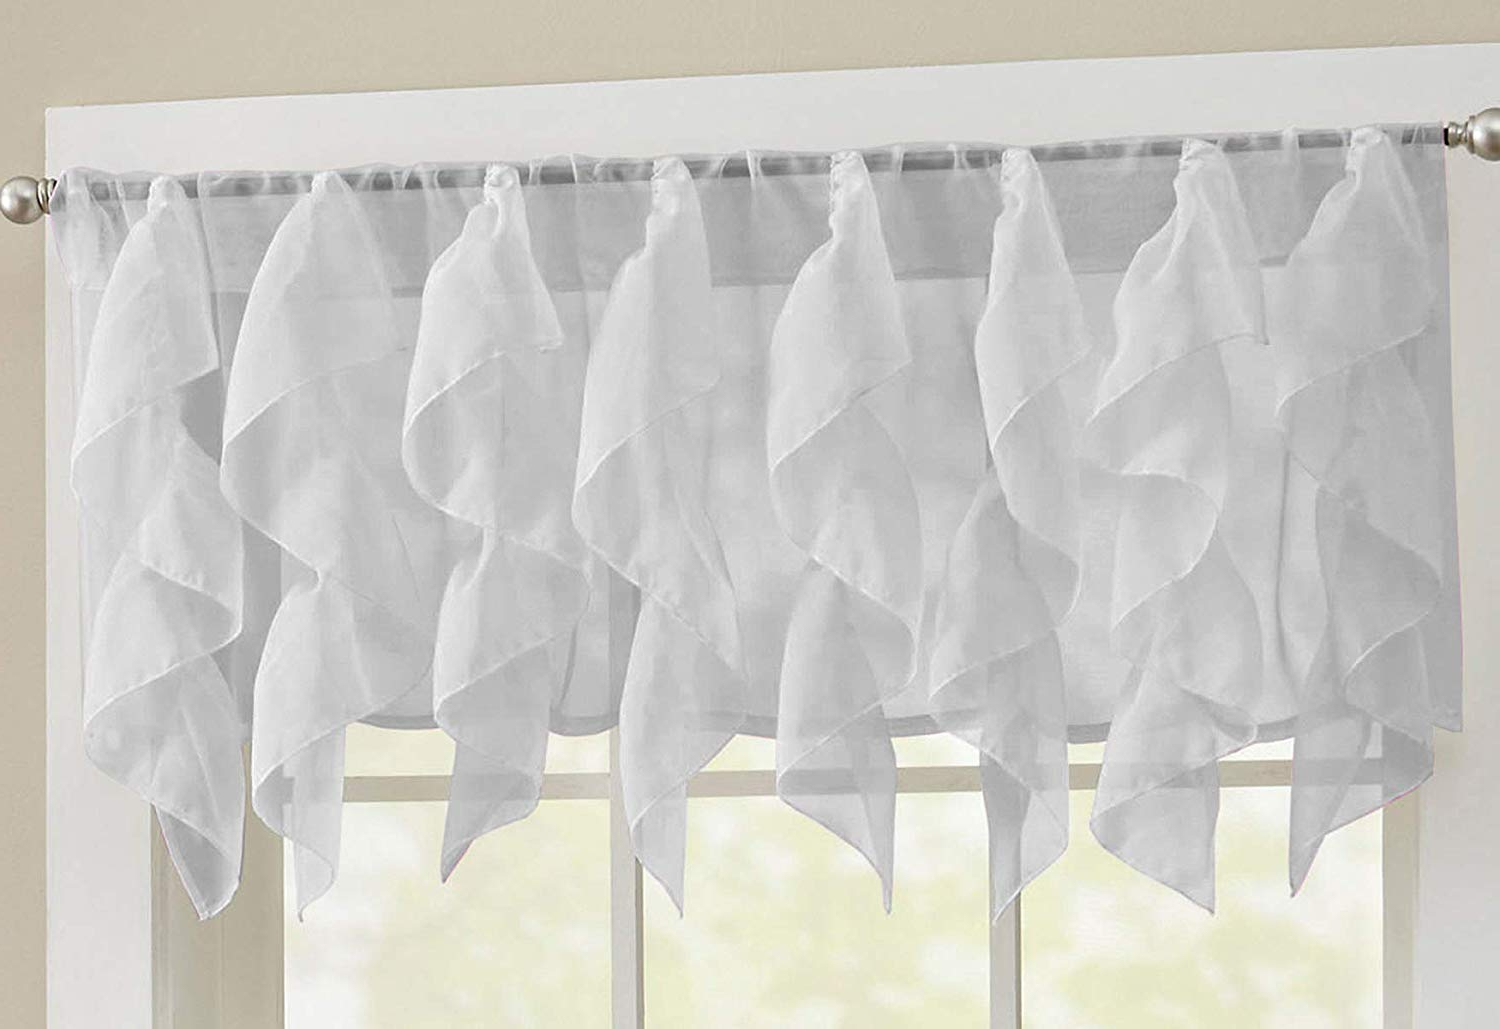 """2021 Silver Vertical Ruffled Waterfall Valance And Curtain Tiers For Sweet Home Collection Veritcal Kitchen Curtain Sheer Cascading Ruffle Waterfall Window Treatment – Choice Of Valance, 24"""" Or 36"""" Teir, And Kit Silver (View 12 of 20)"""